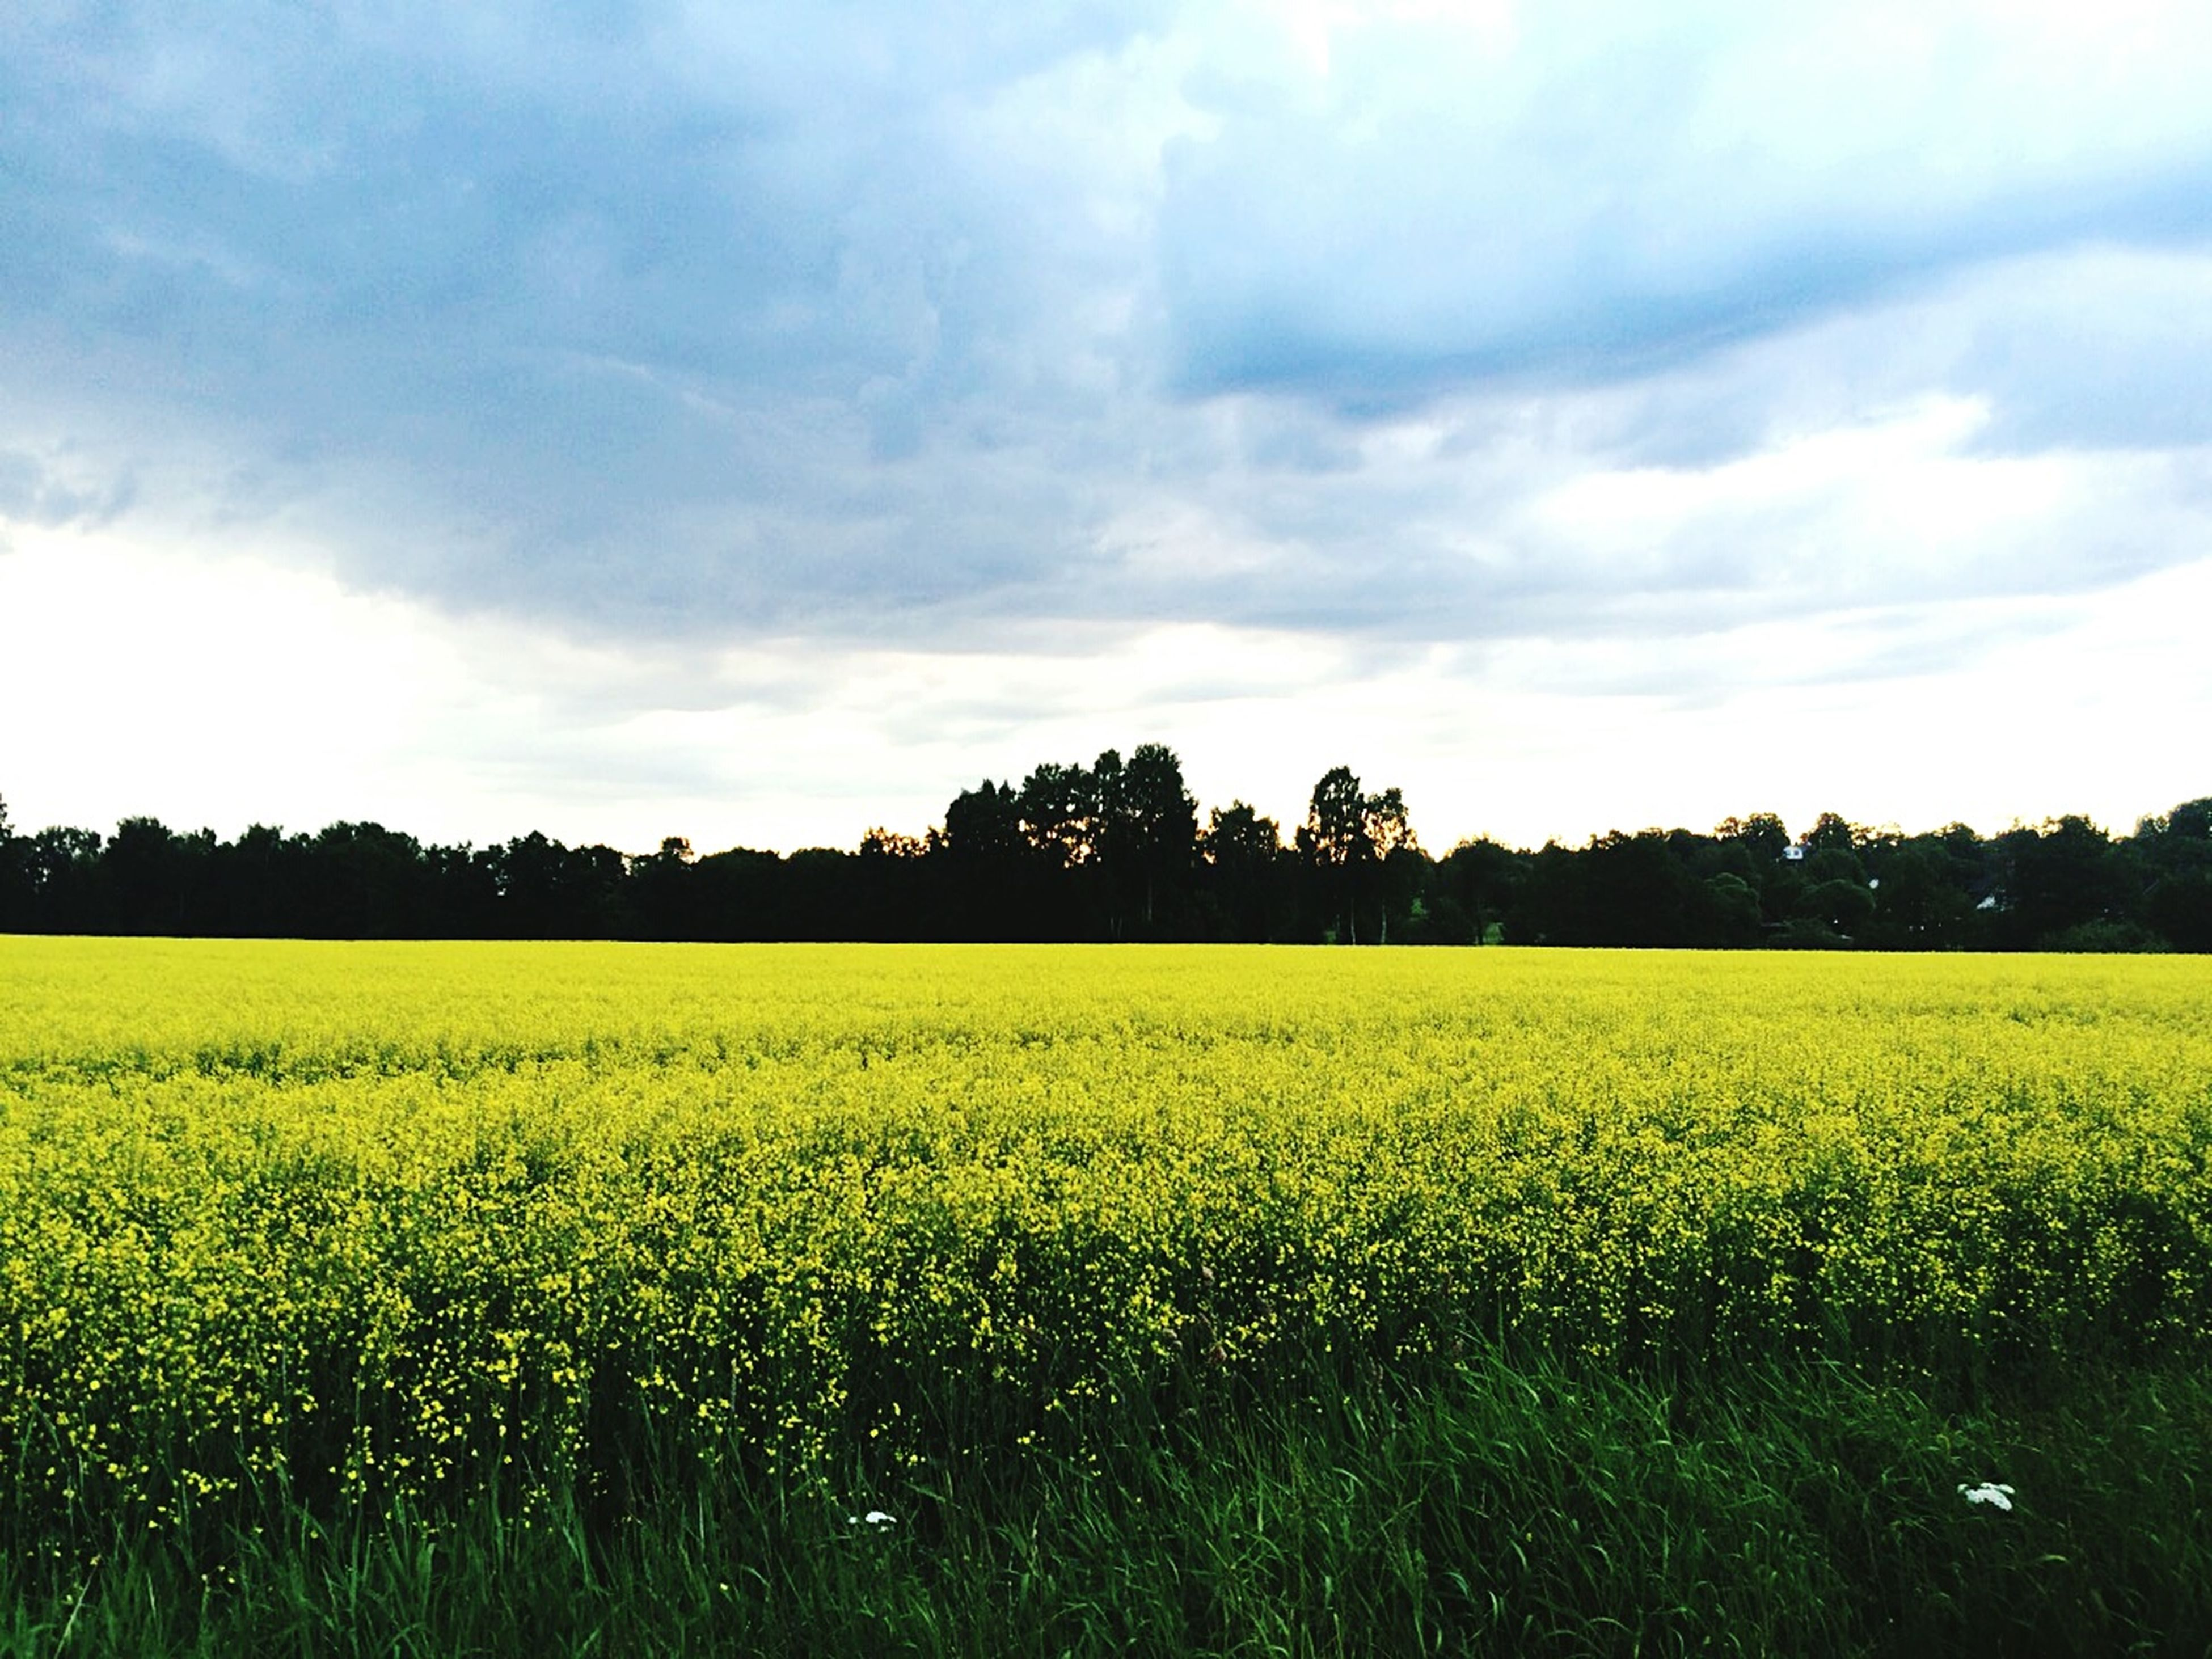 agriculture, field, tranquil scene, rural scene, landscape, tranquility, beauty in nature, growth, sky, scenics, farm, yellow, nature, crop, tree, cultivated land, cloud - sky, cloud, oilseed rape, idyllic